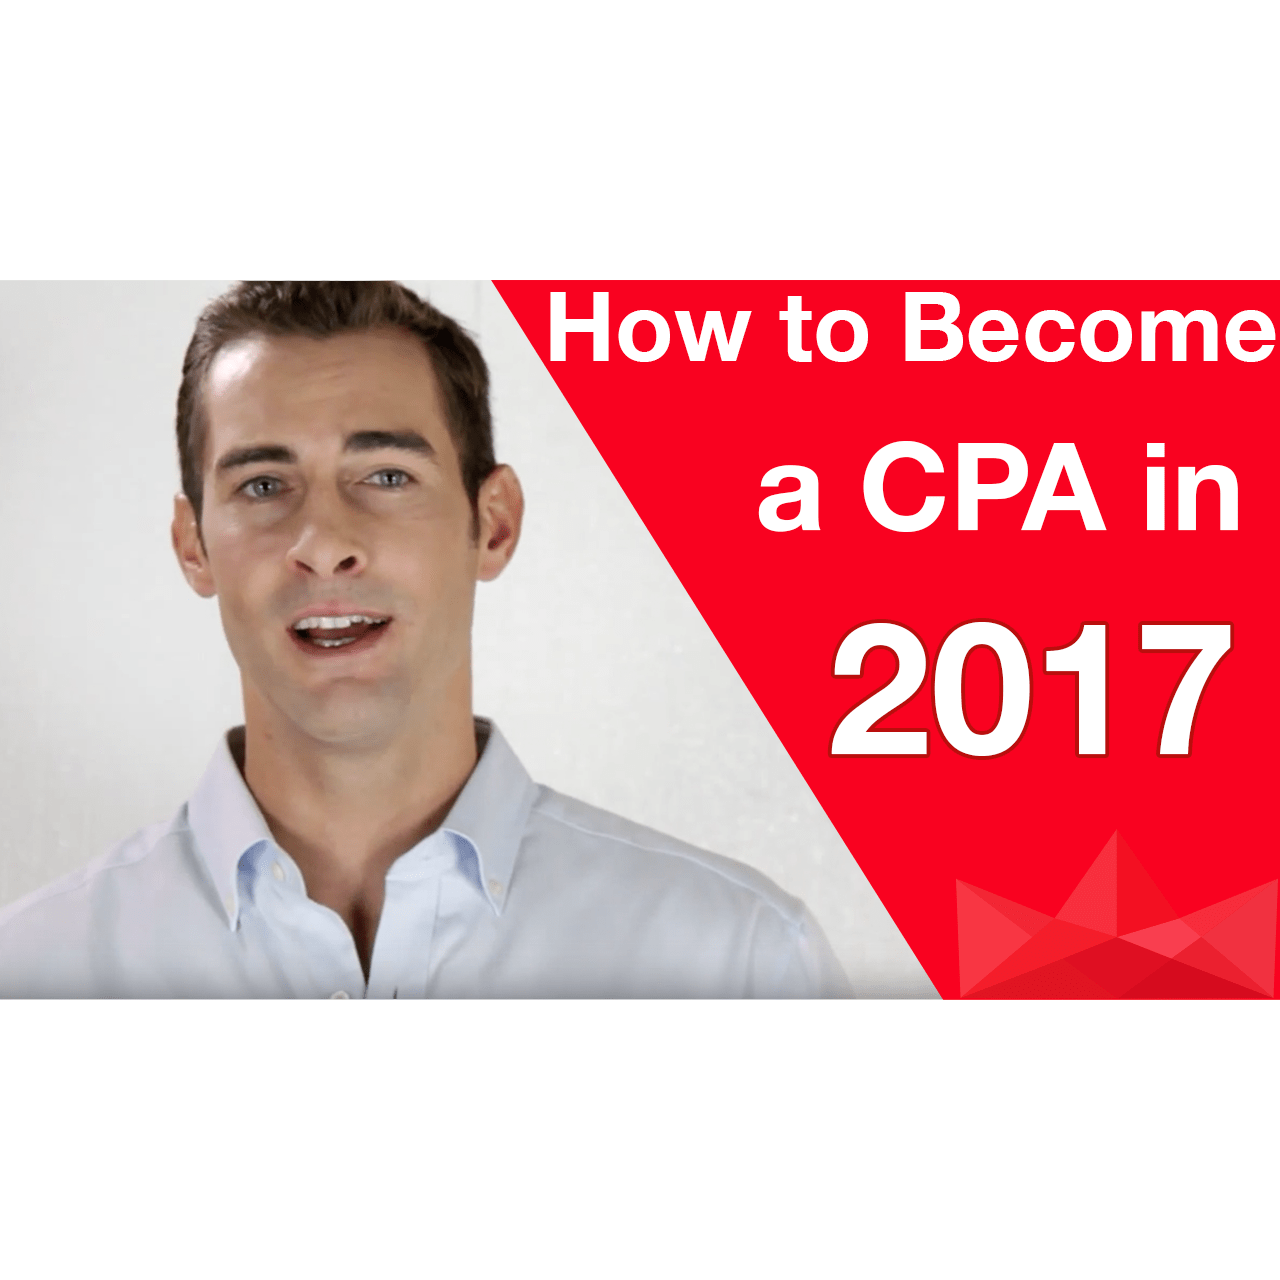 Bryce Welker, CPA How to become a CPA